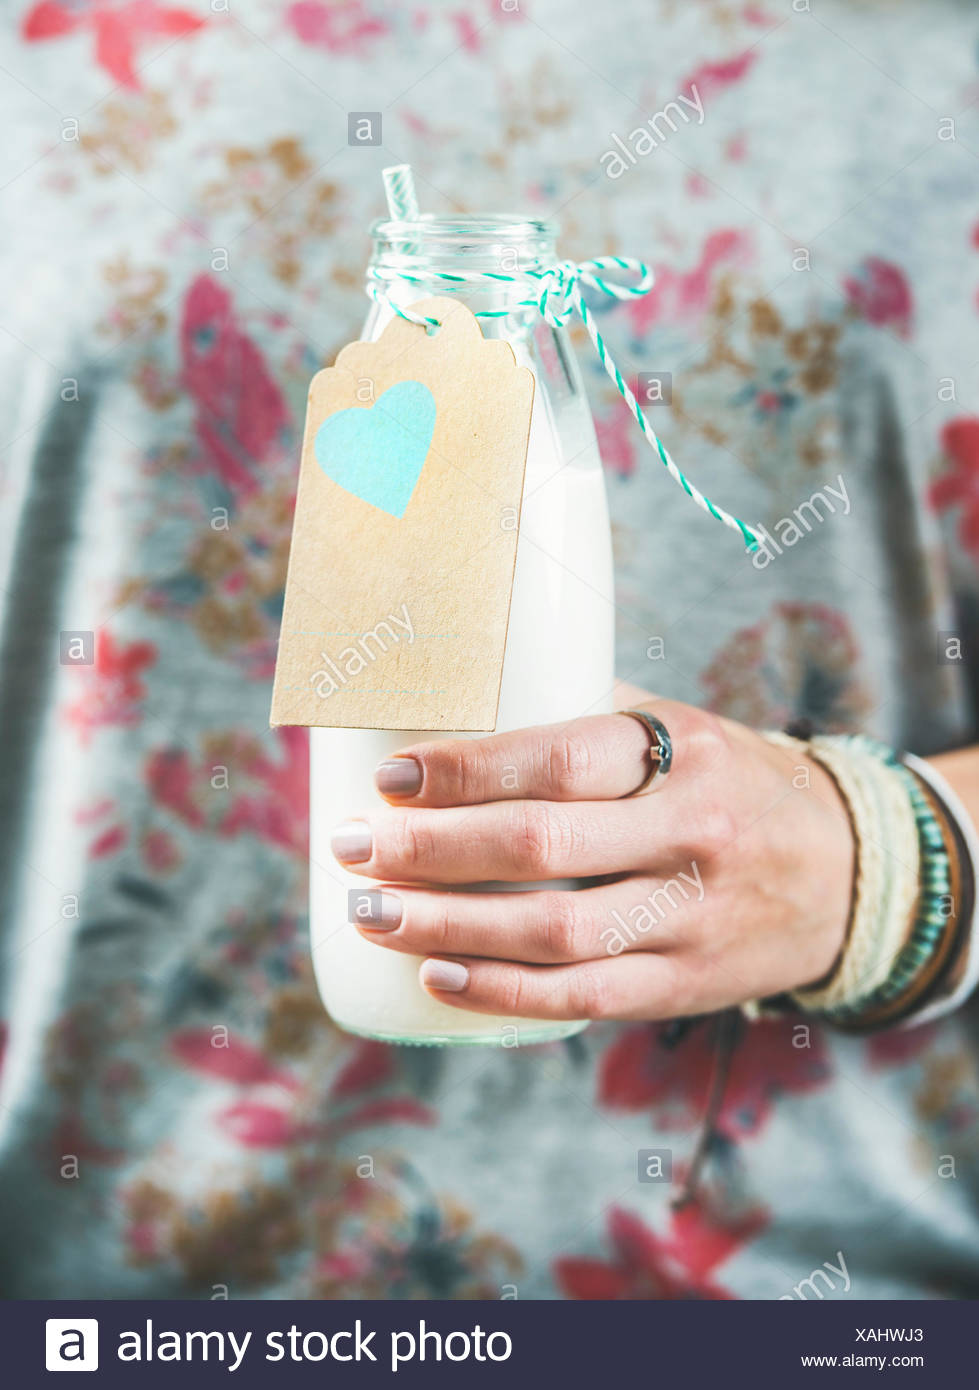 Young woman in grey t-shirt with floral pattern holding bottle of dairy-free almond milk in her hand. Clean eating, vegan, vegetarian, dieting, health - Stock Image